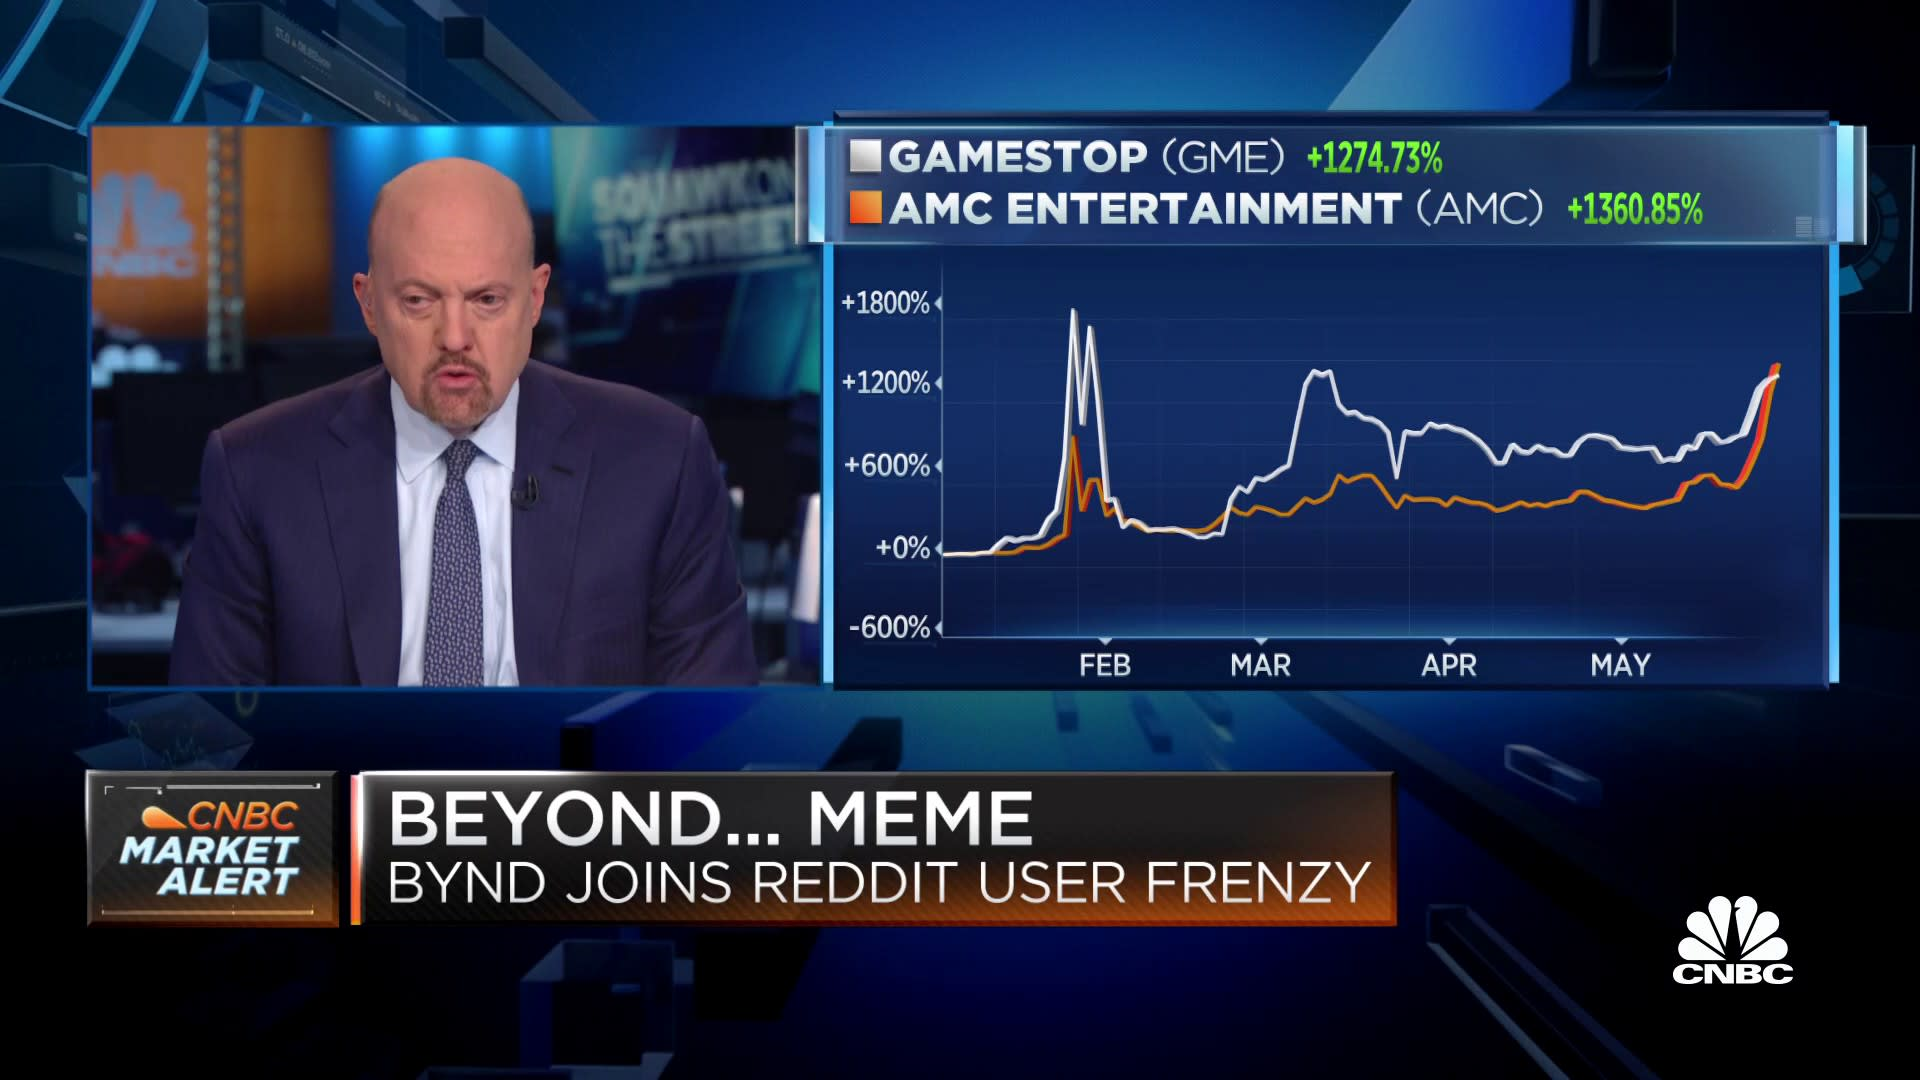 Jim Cramer: AMC's stock action has nothing to do with the company